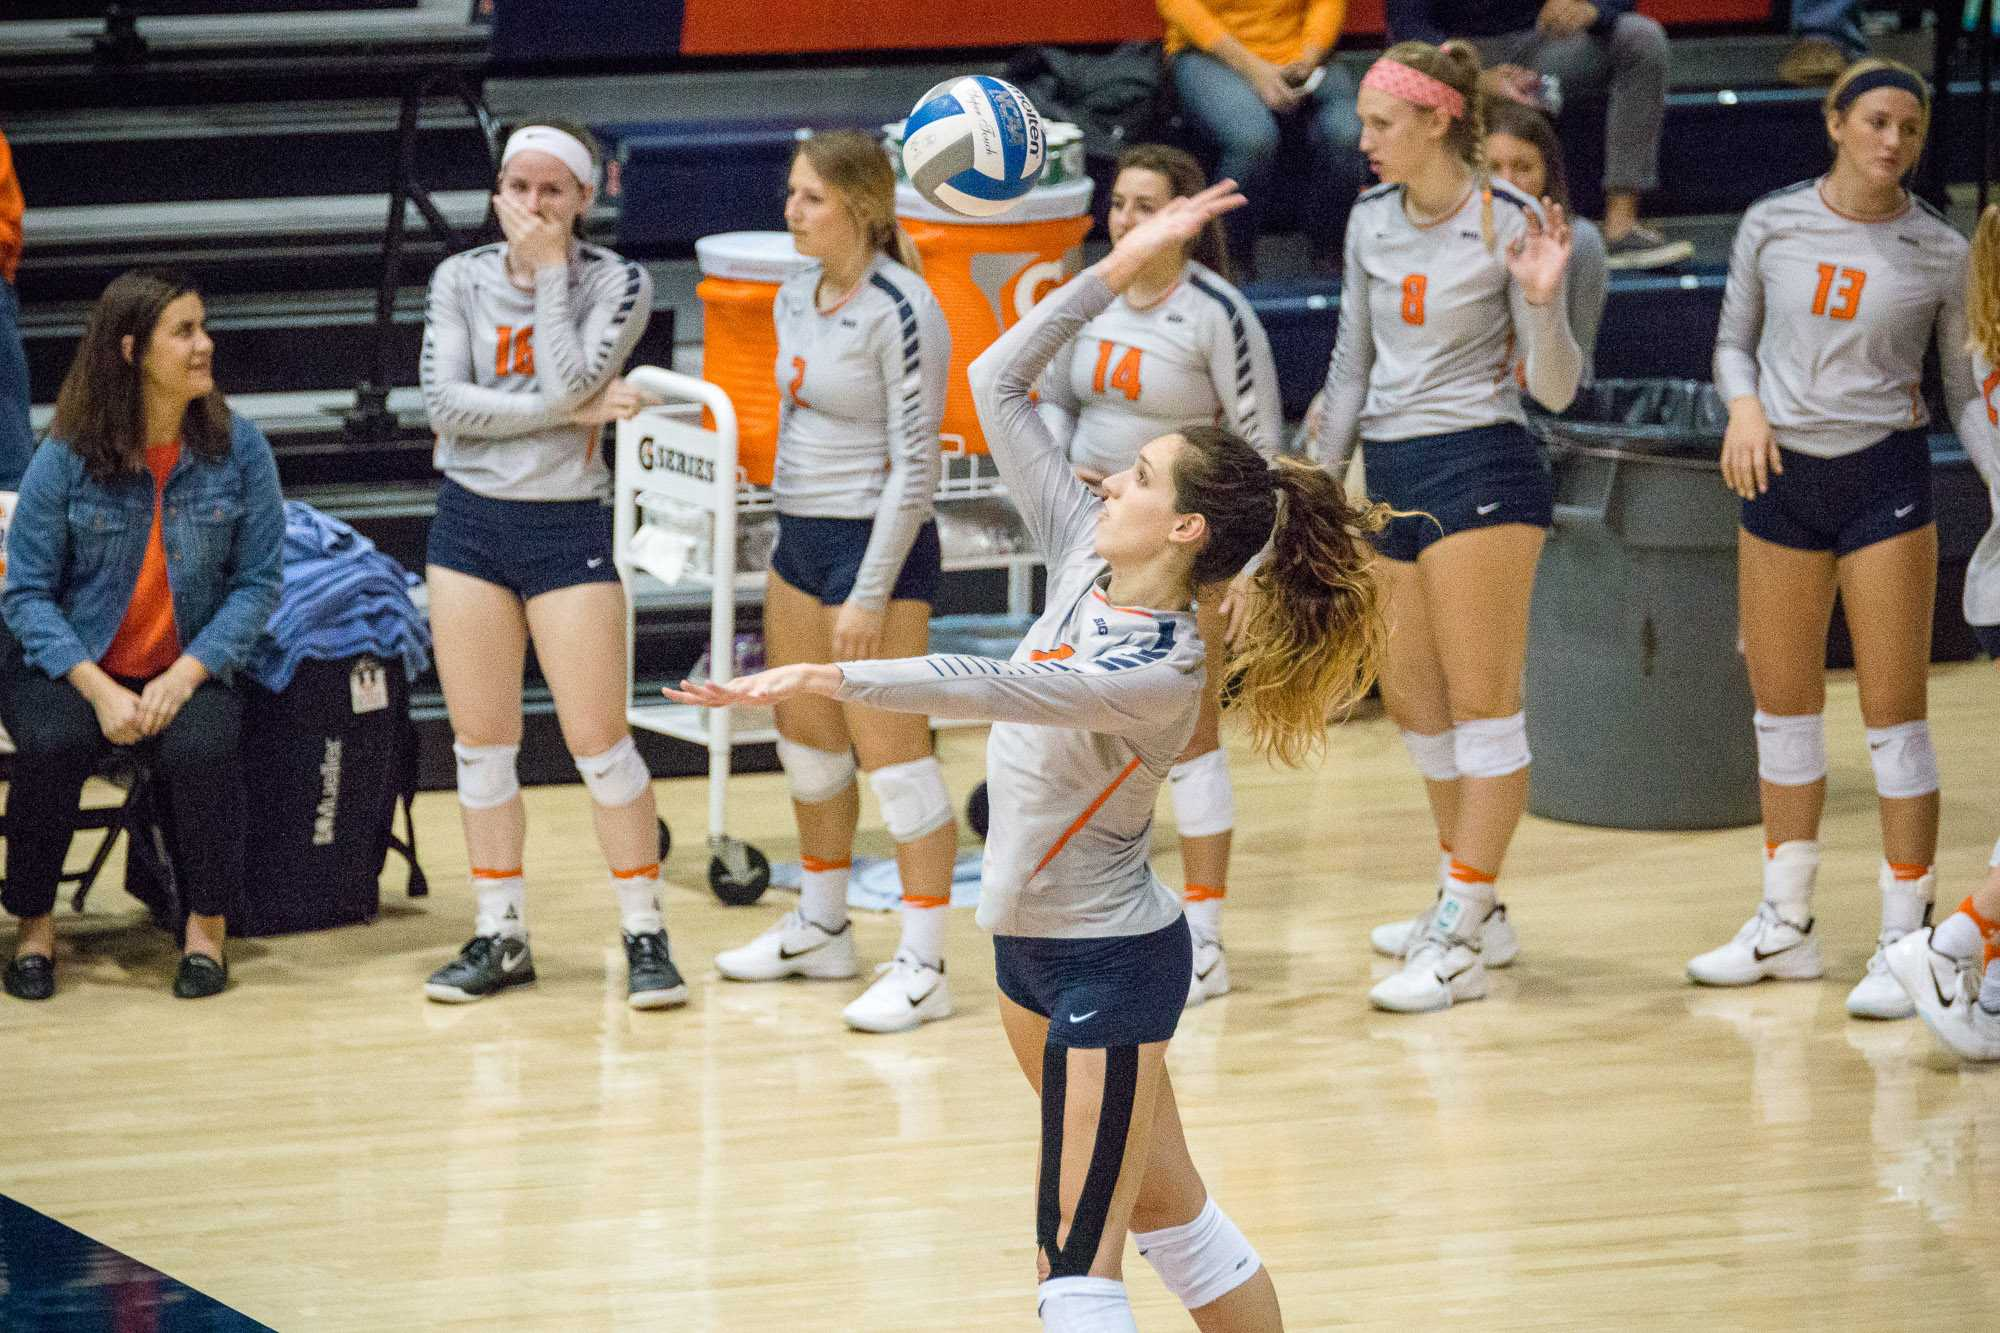 Illinois' Michelle Strizak serves the ball during the match against Northwestern at Huff Hall on Saturday, October 15. The Illini won 3-0.